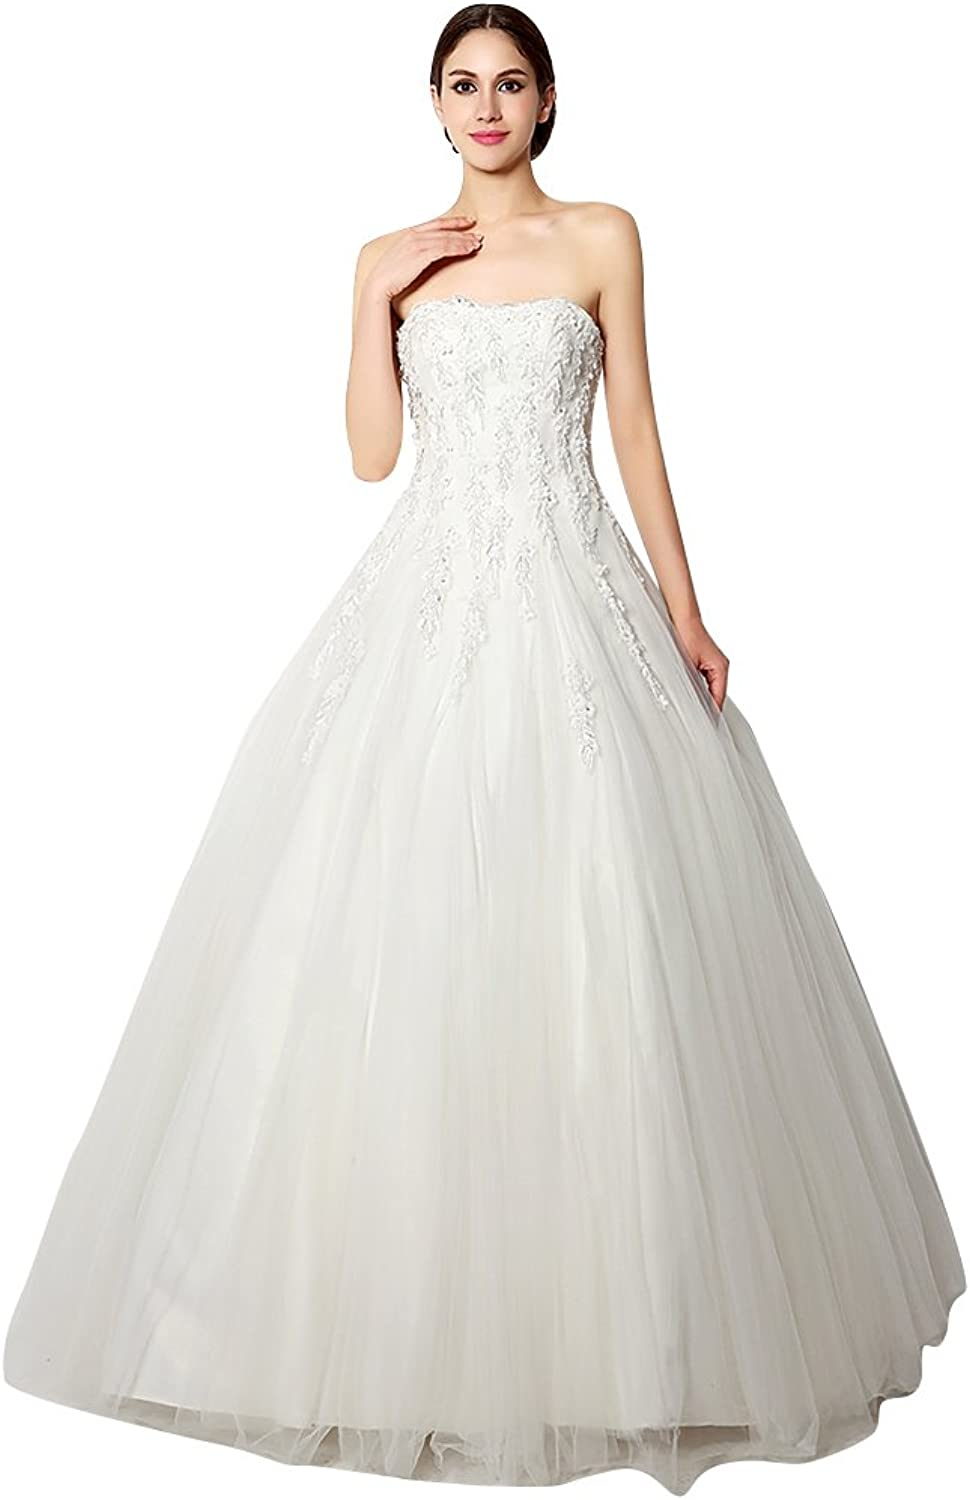 BeautyEmily Flower Lace Sweetheart Strapless Ball Wedding Dress